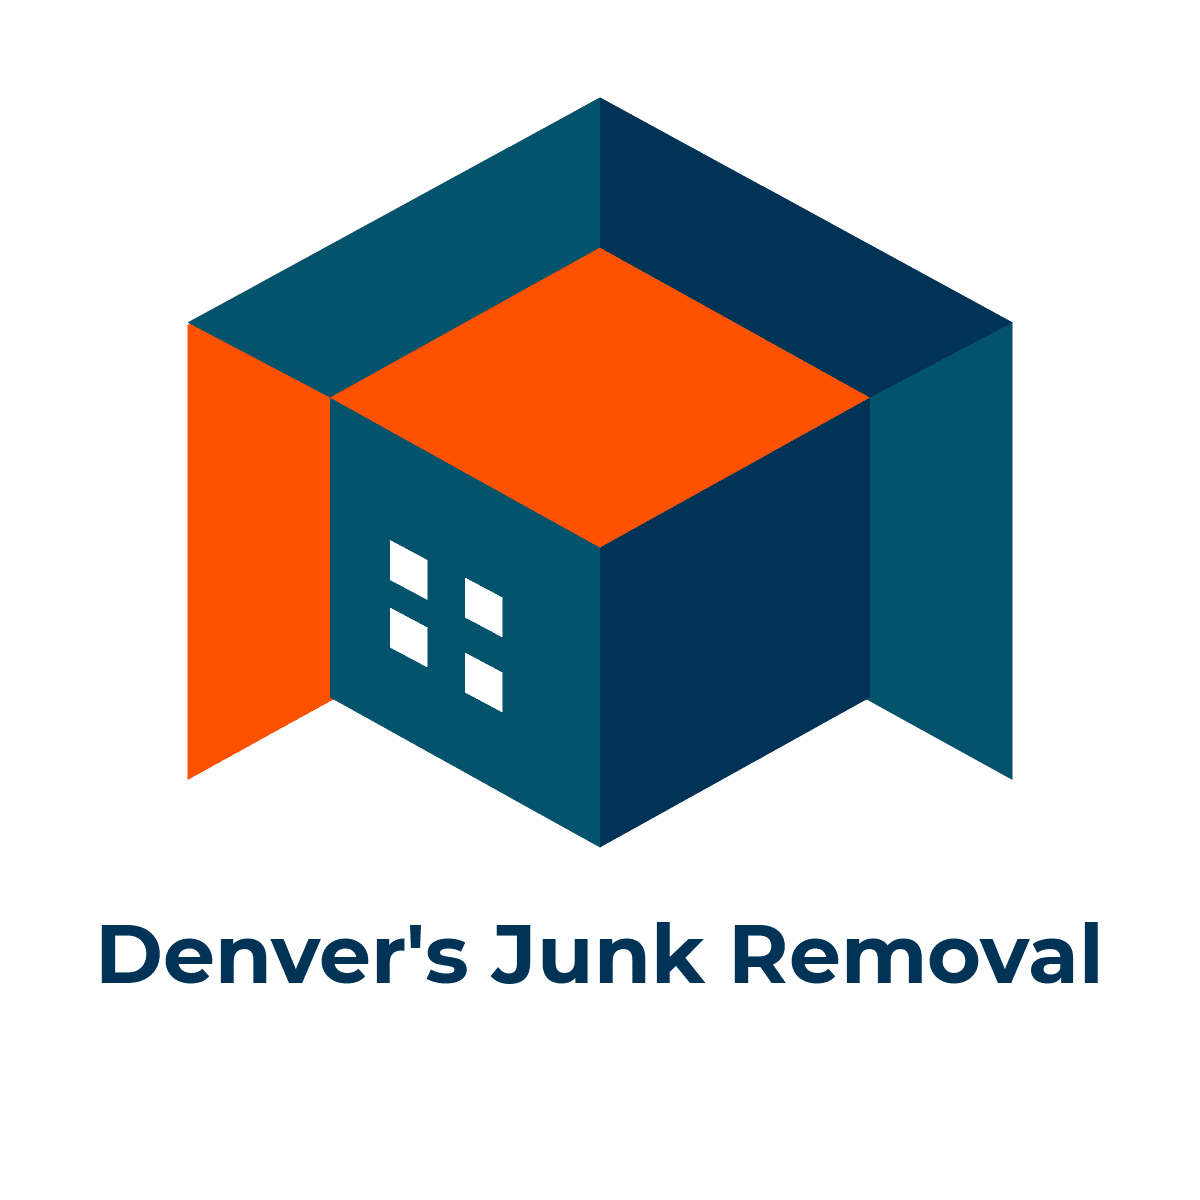 Denver's Junk Removal Announces Grand Opening With A New Year Deal